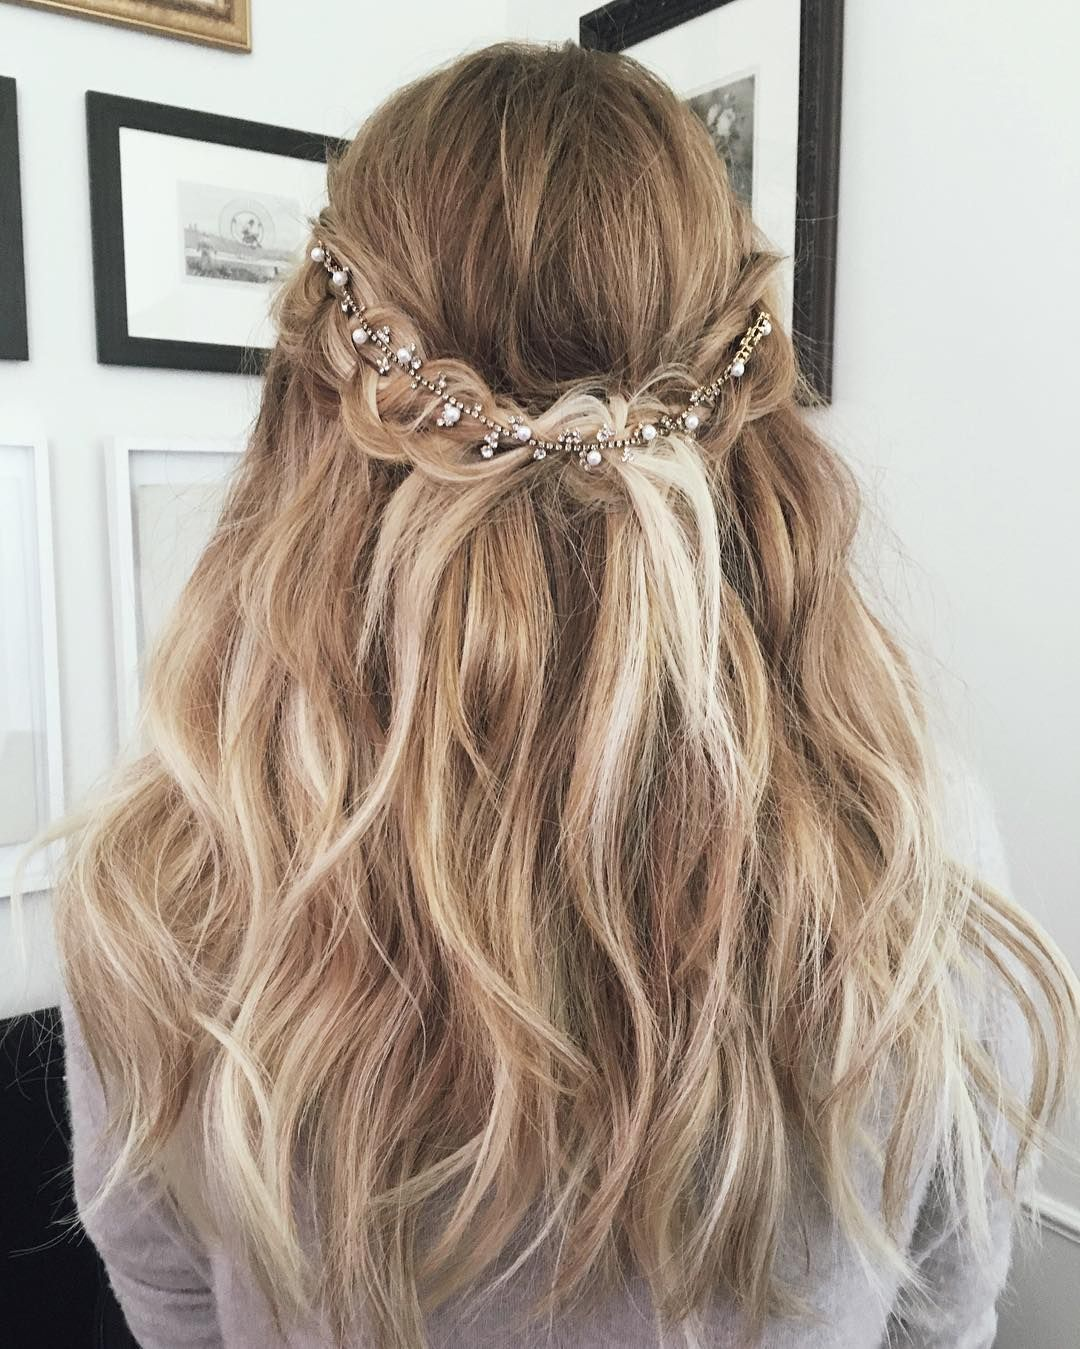 Braided Wedding Hair: Lauren Conrad Blonde Ombre Half Up Half Down Wavy Long